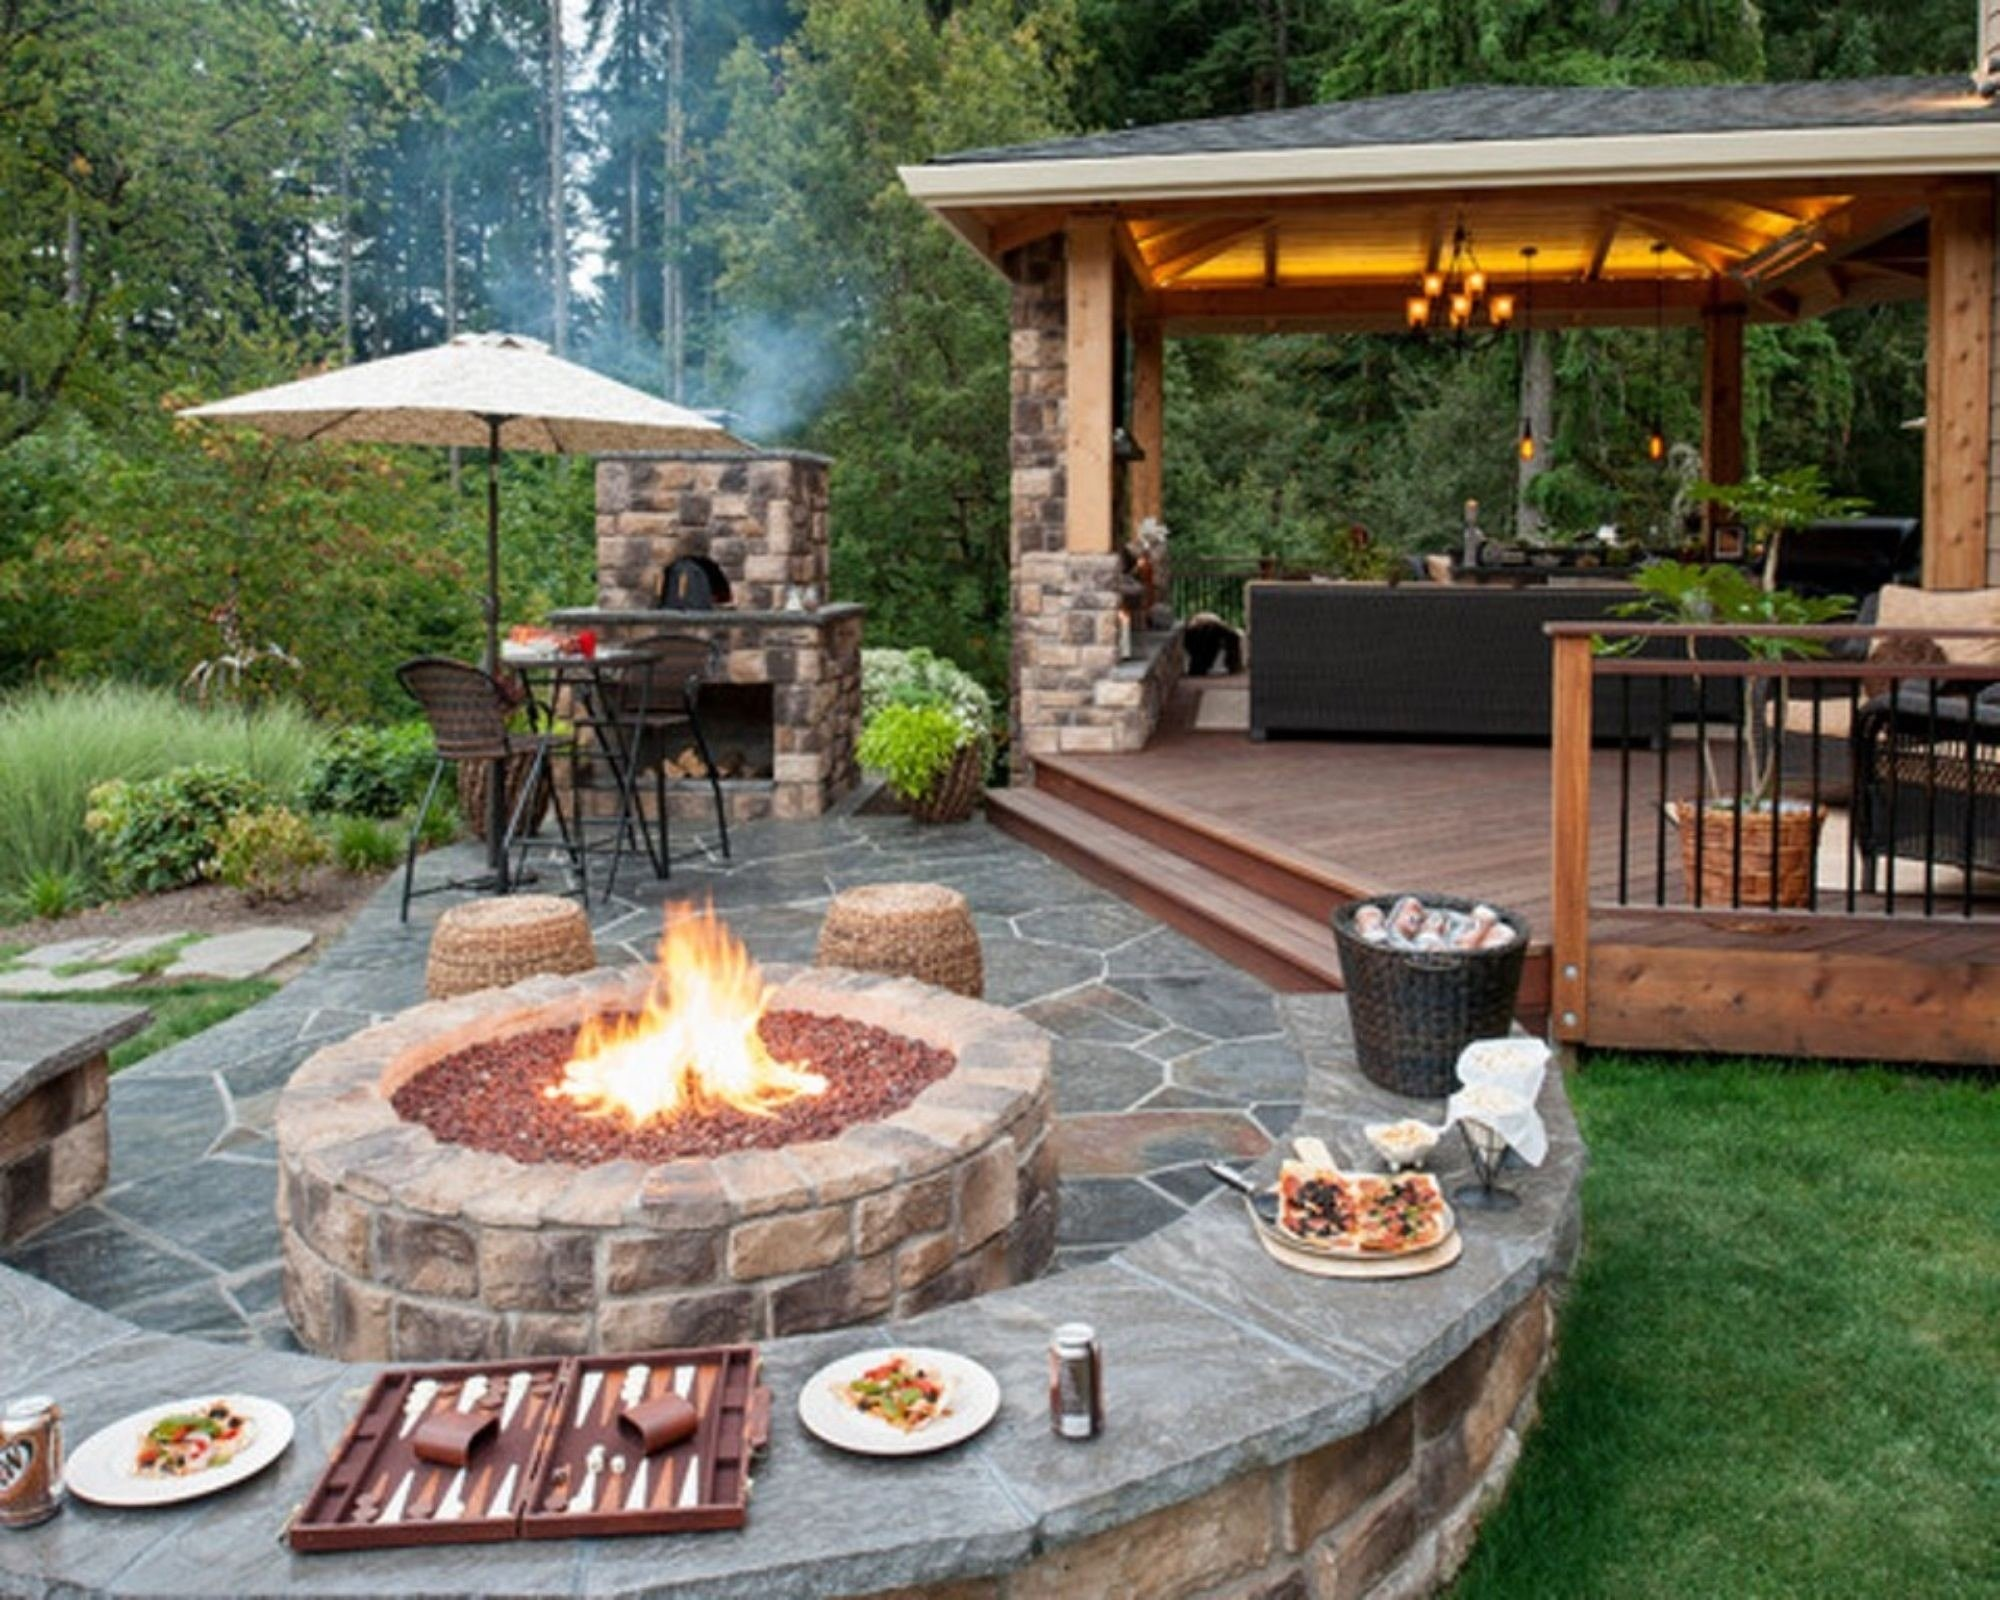 10 Perfect Outdoor Patio Ideas For Small Spaces outdoor patio ideas for small spaces best of paver small patio 2020